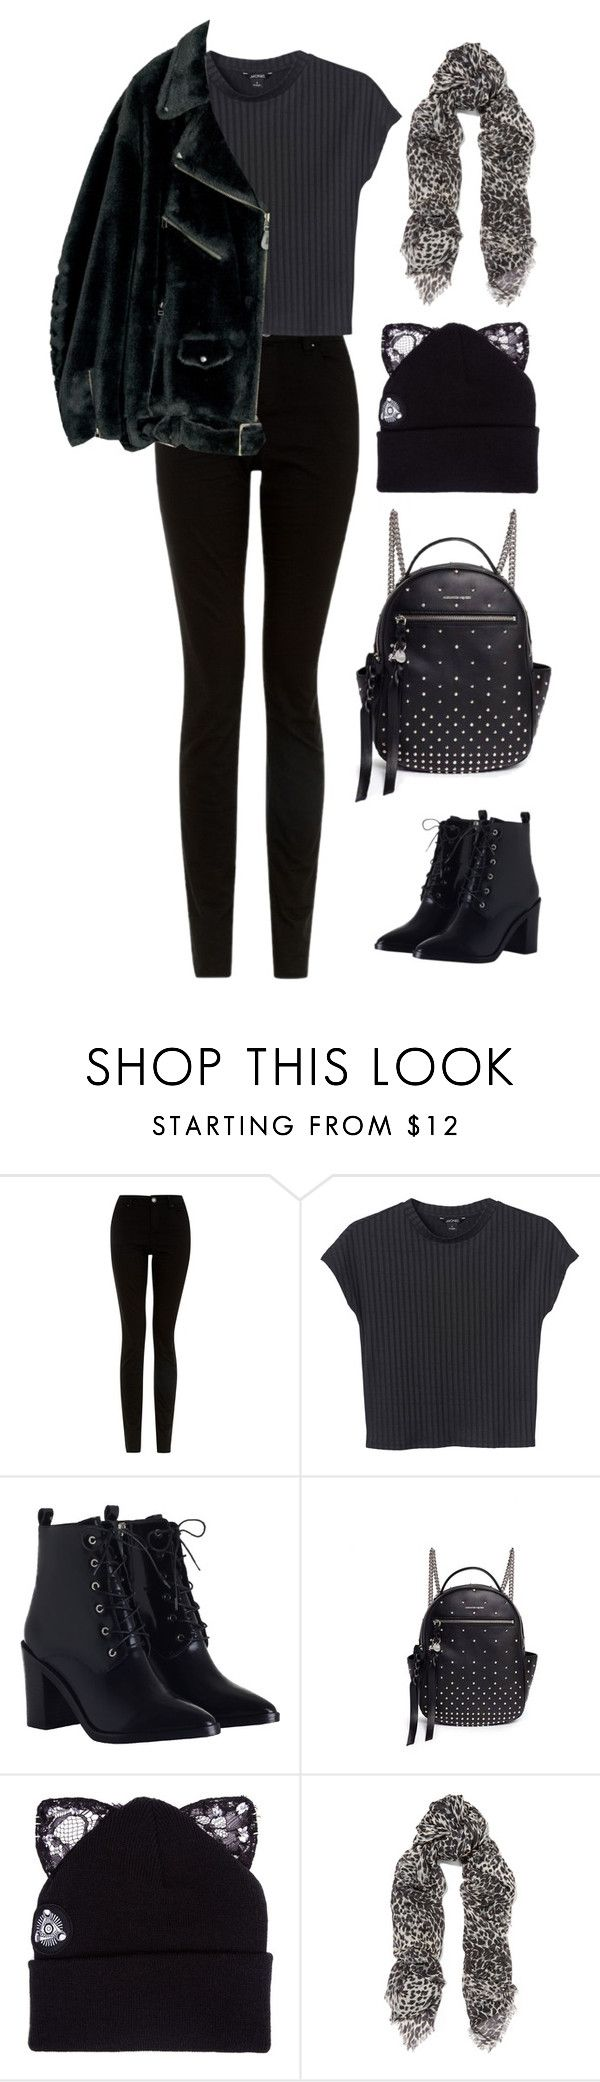 """""""Unbenannt #1625"""" by uniqueautumn ❤ liked on Polyvore featuring Monki, Zimmermann, Alexander McQueen, Silver Spoon Attire and Yves Saint Laurent"""